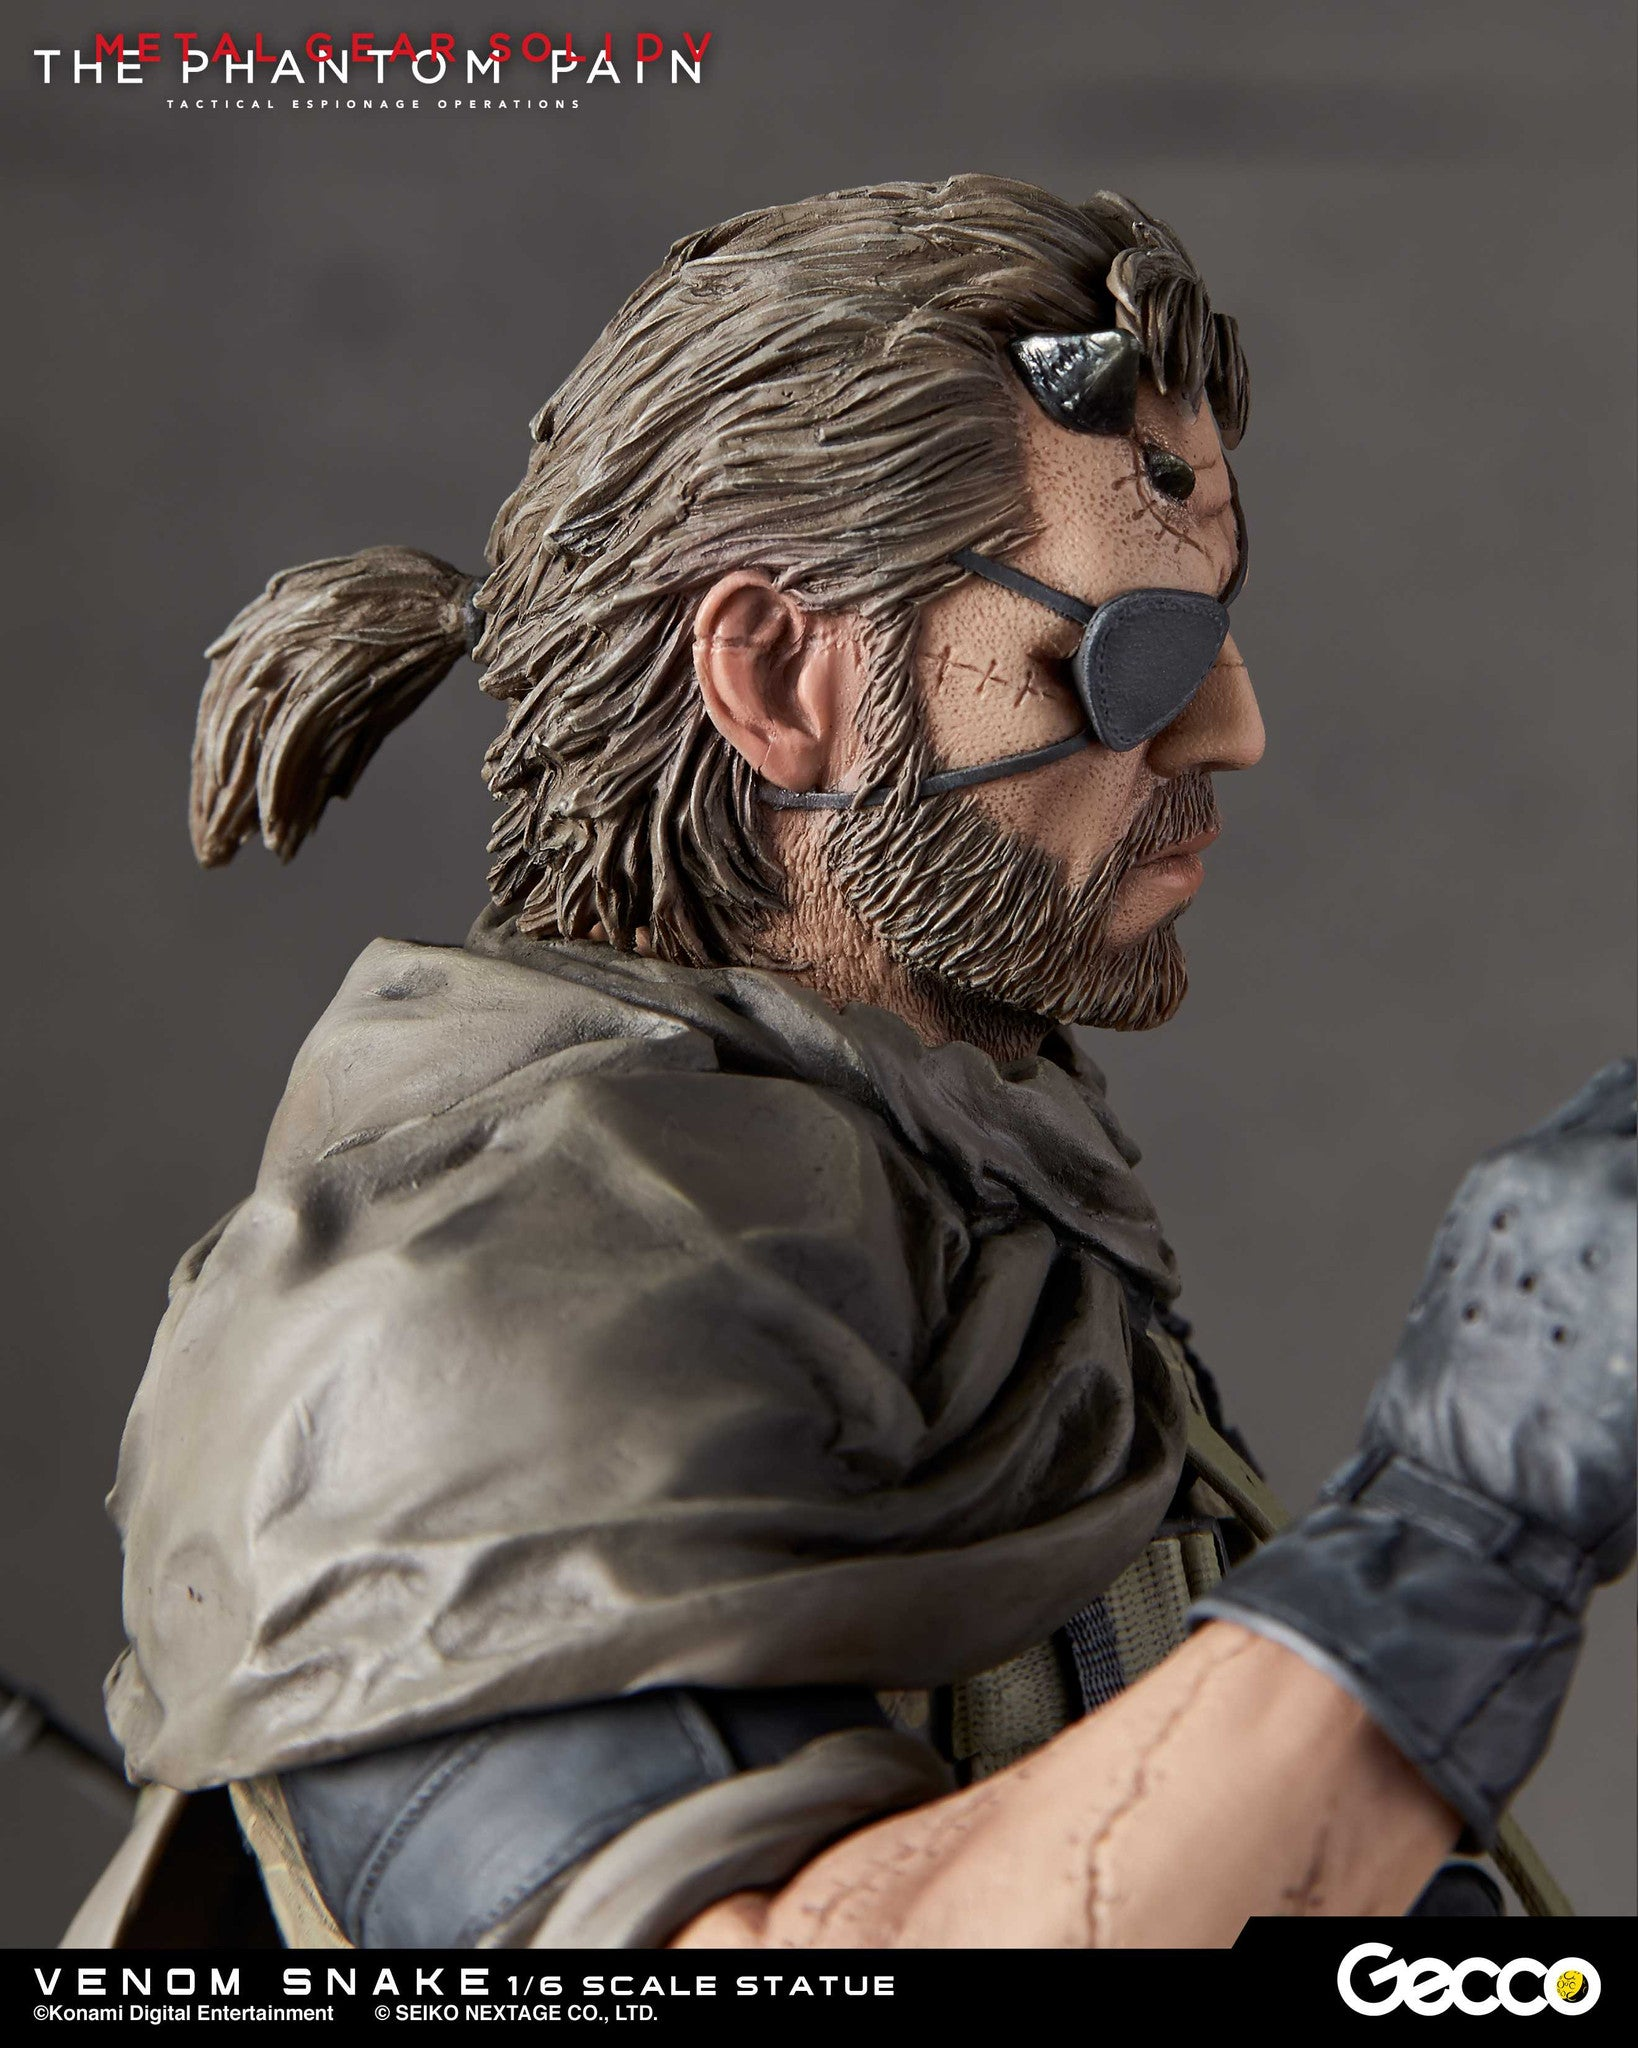 Gecco - Metal Gear Solid V: The Phantom Pain - Venom Snake 1/6 Scale Statue - Marvelous Toys - 11